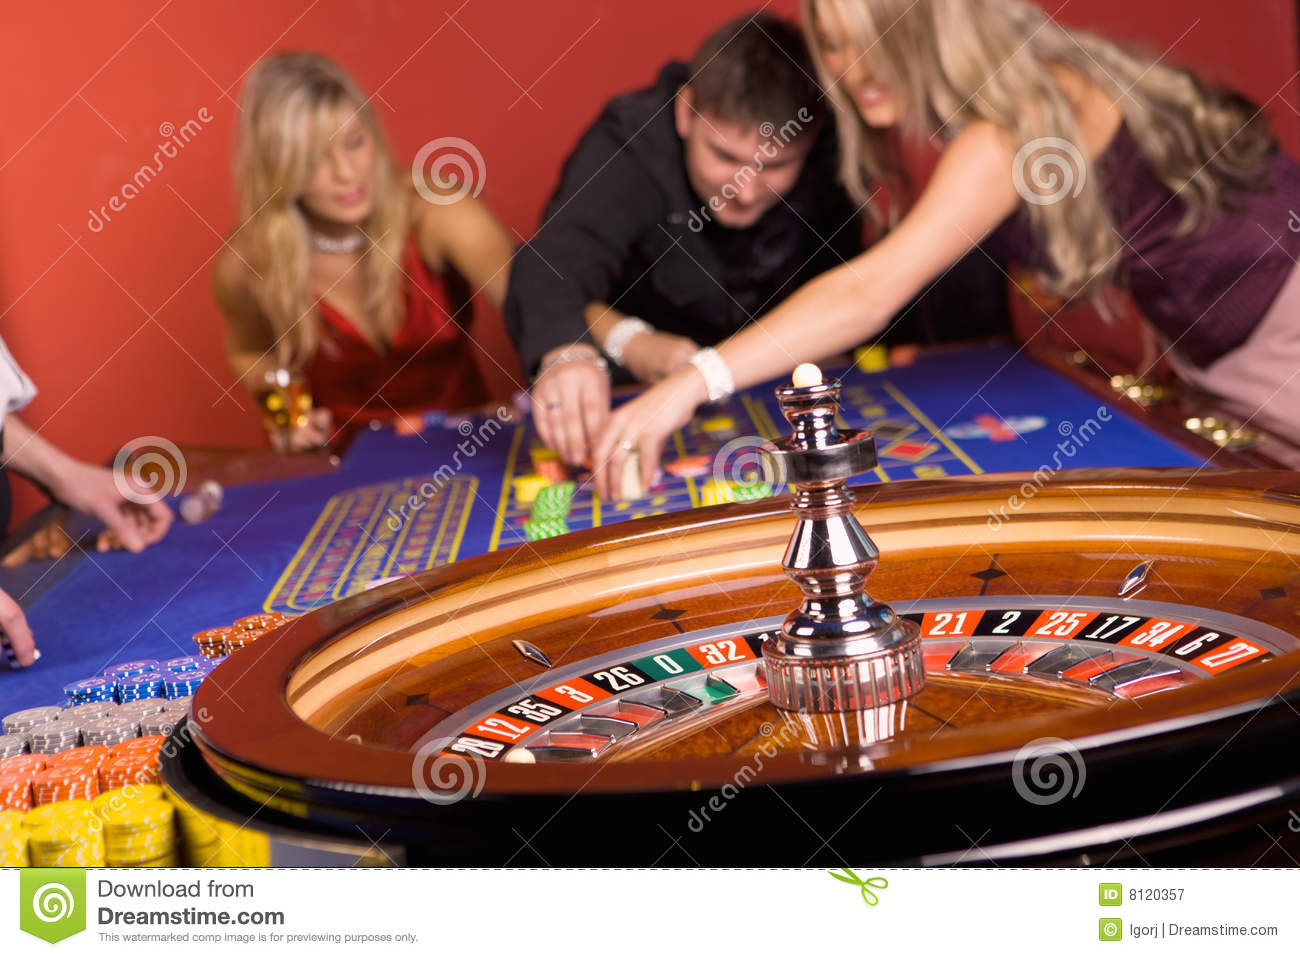 People roulette gratis